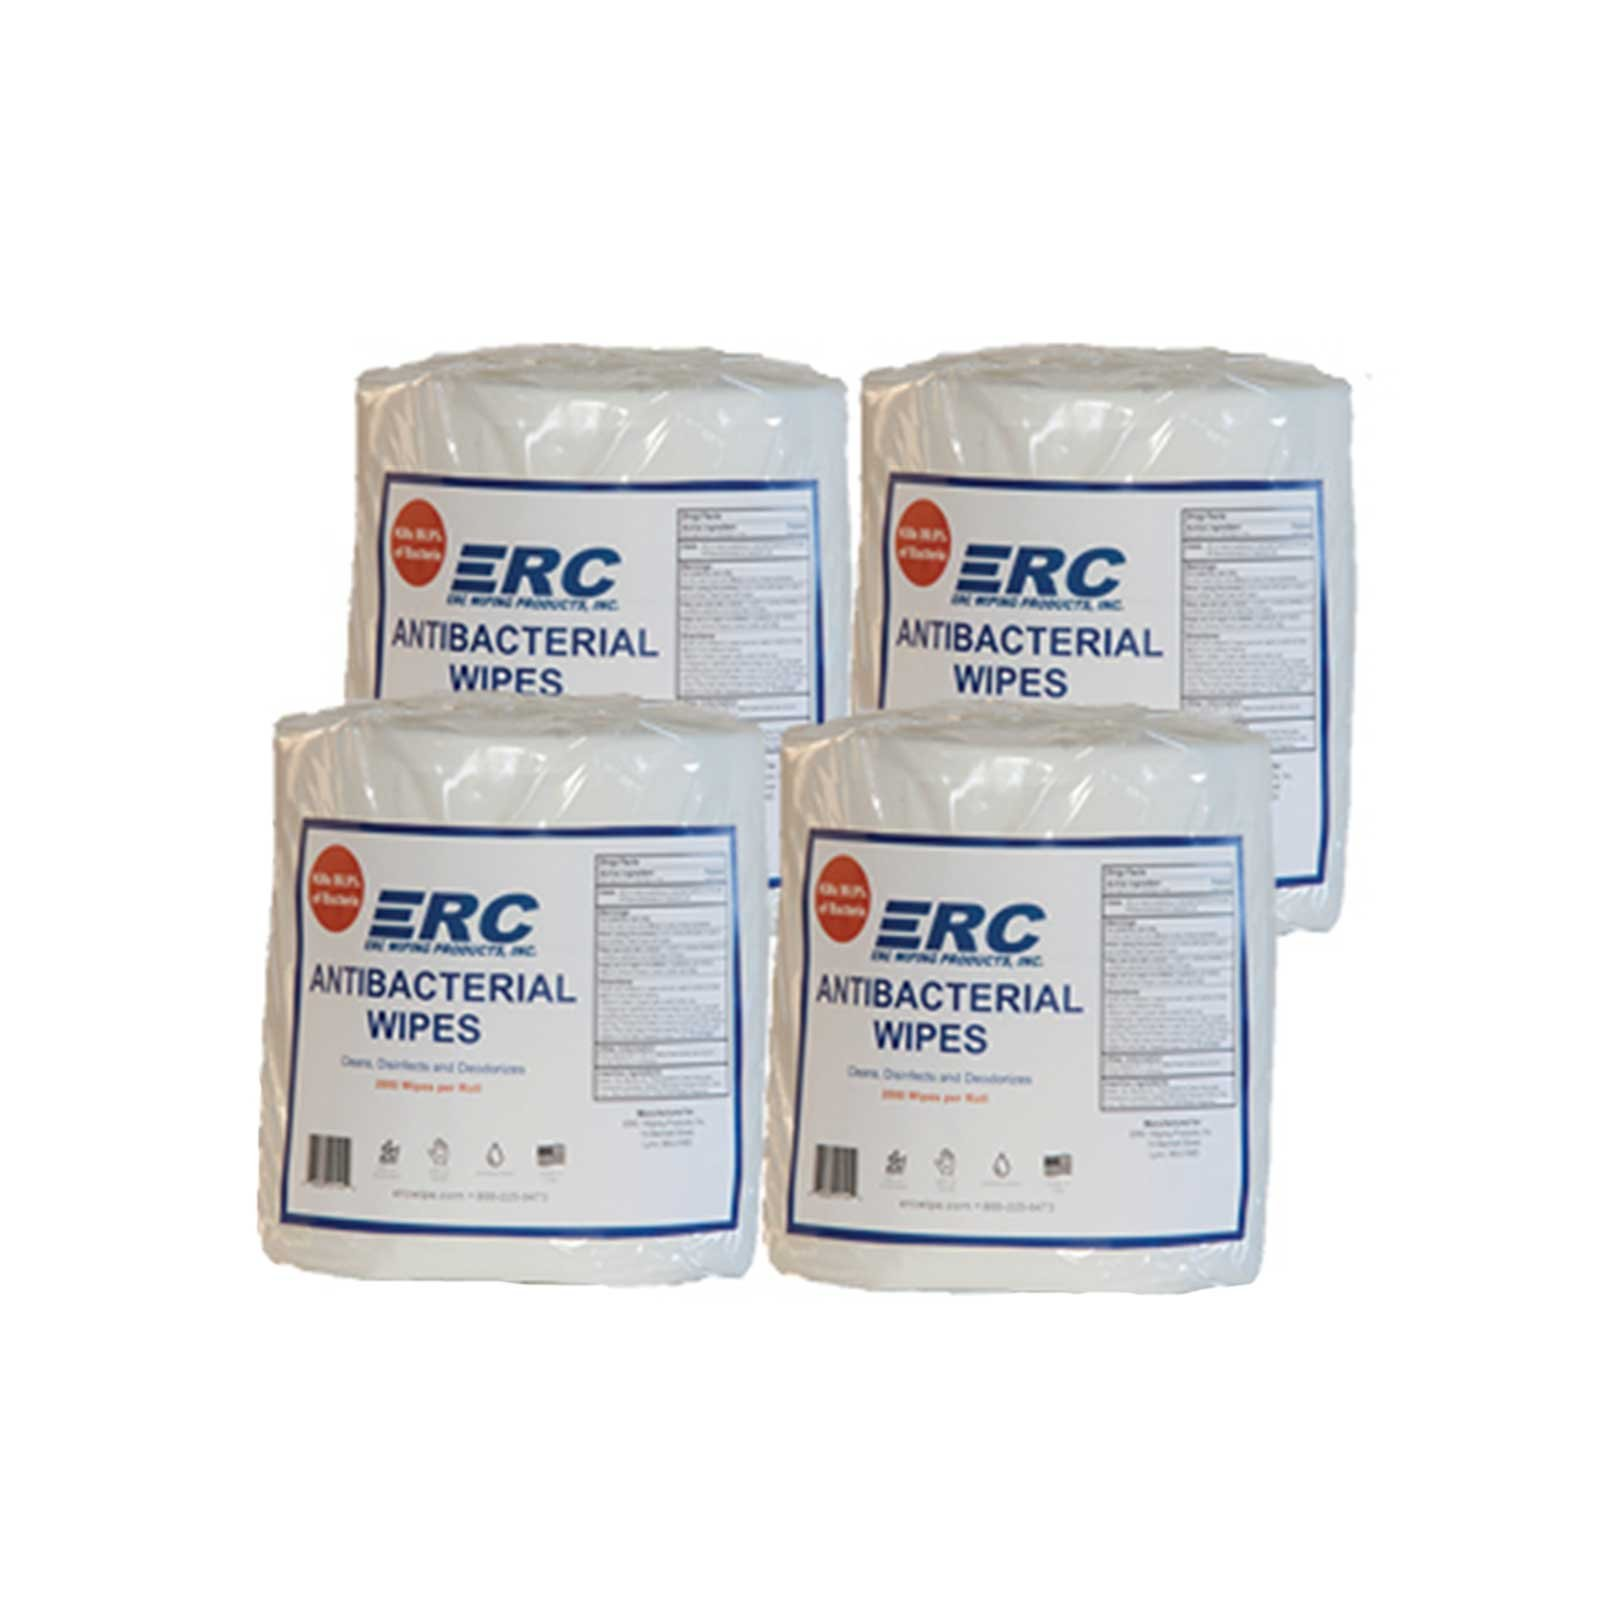 ERC Wiping Products Jumbo Rolls Antibacterial Equipment & Hand Wipes 4 Pack (8000 Wipes)